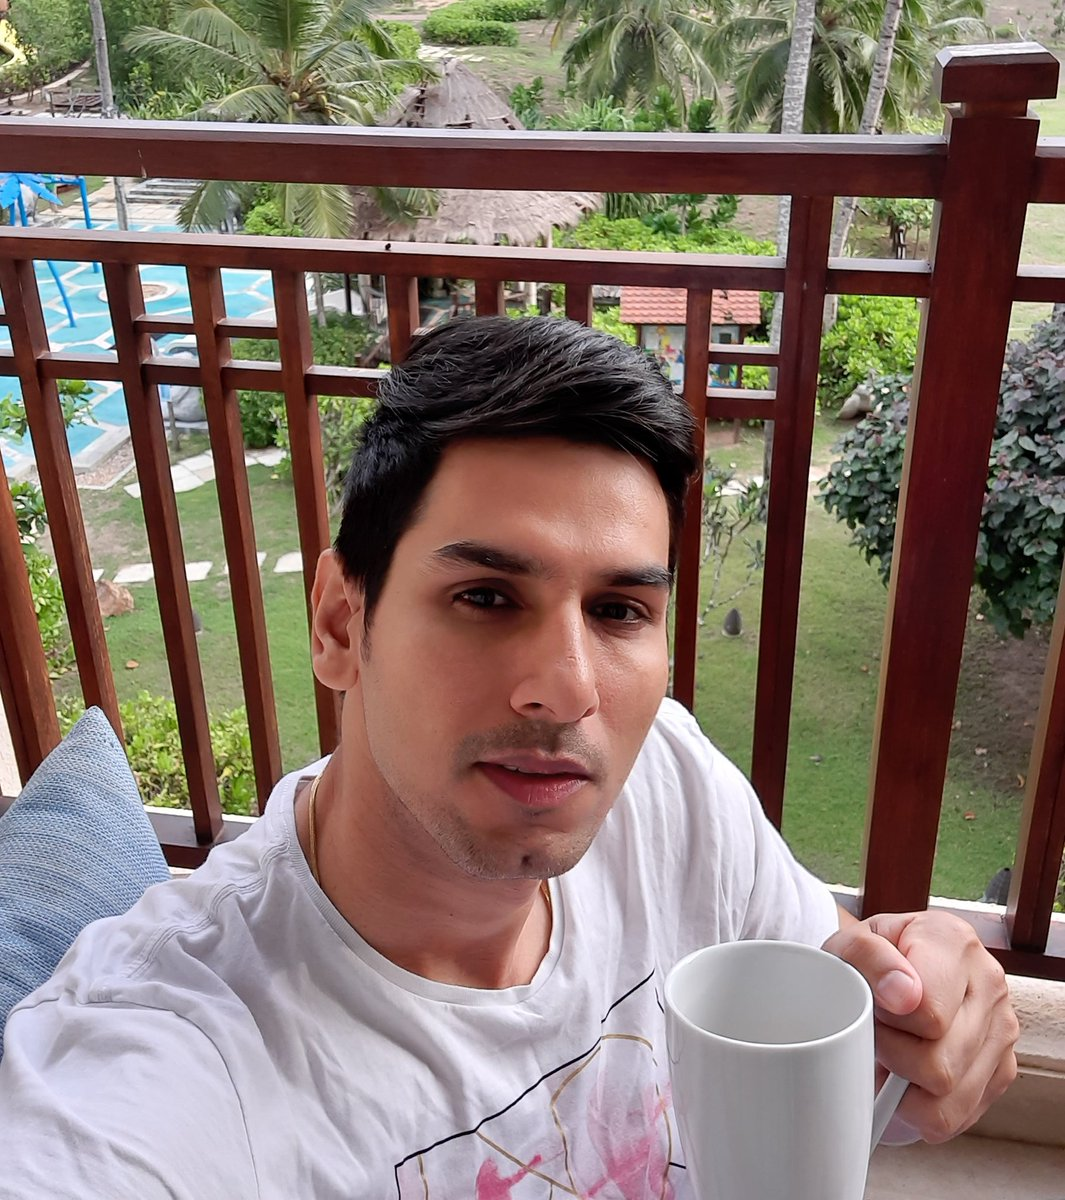 Quarantine Day 3 in Hambantota with my Srilankan tea , Cannot wait to hit the ground 🏏🏏🏏 #sudeeptyagi #lplt20 #t20cricket #indiancricketer #srilanka #dambullaviiking